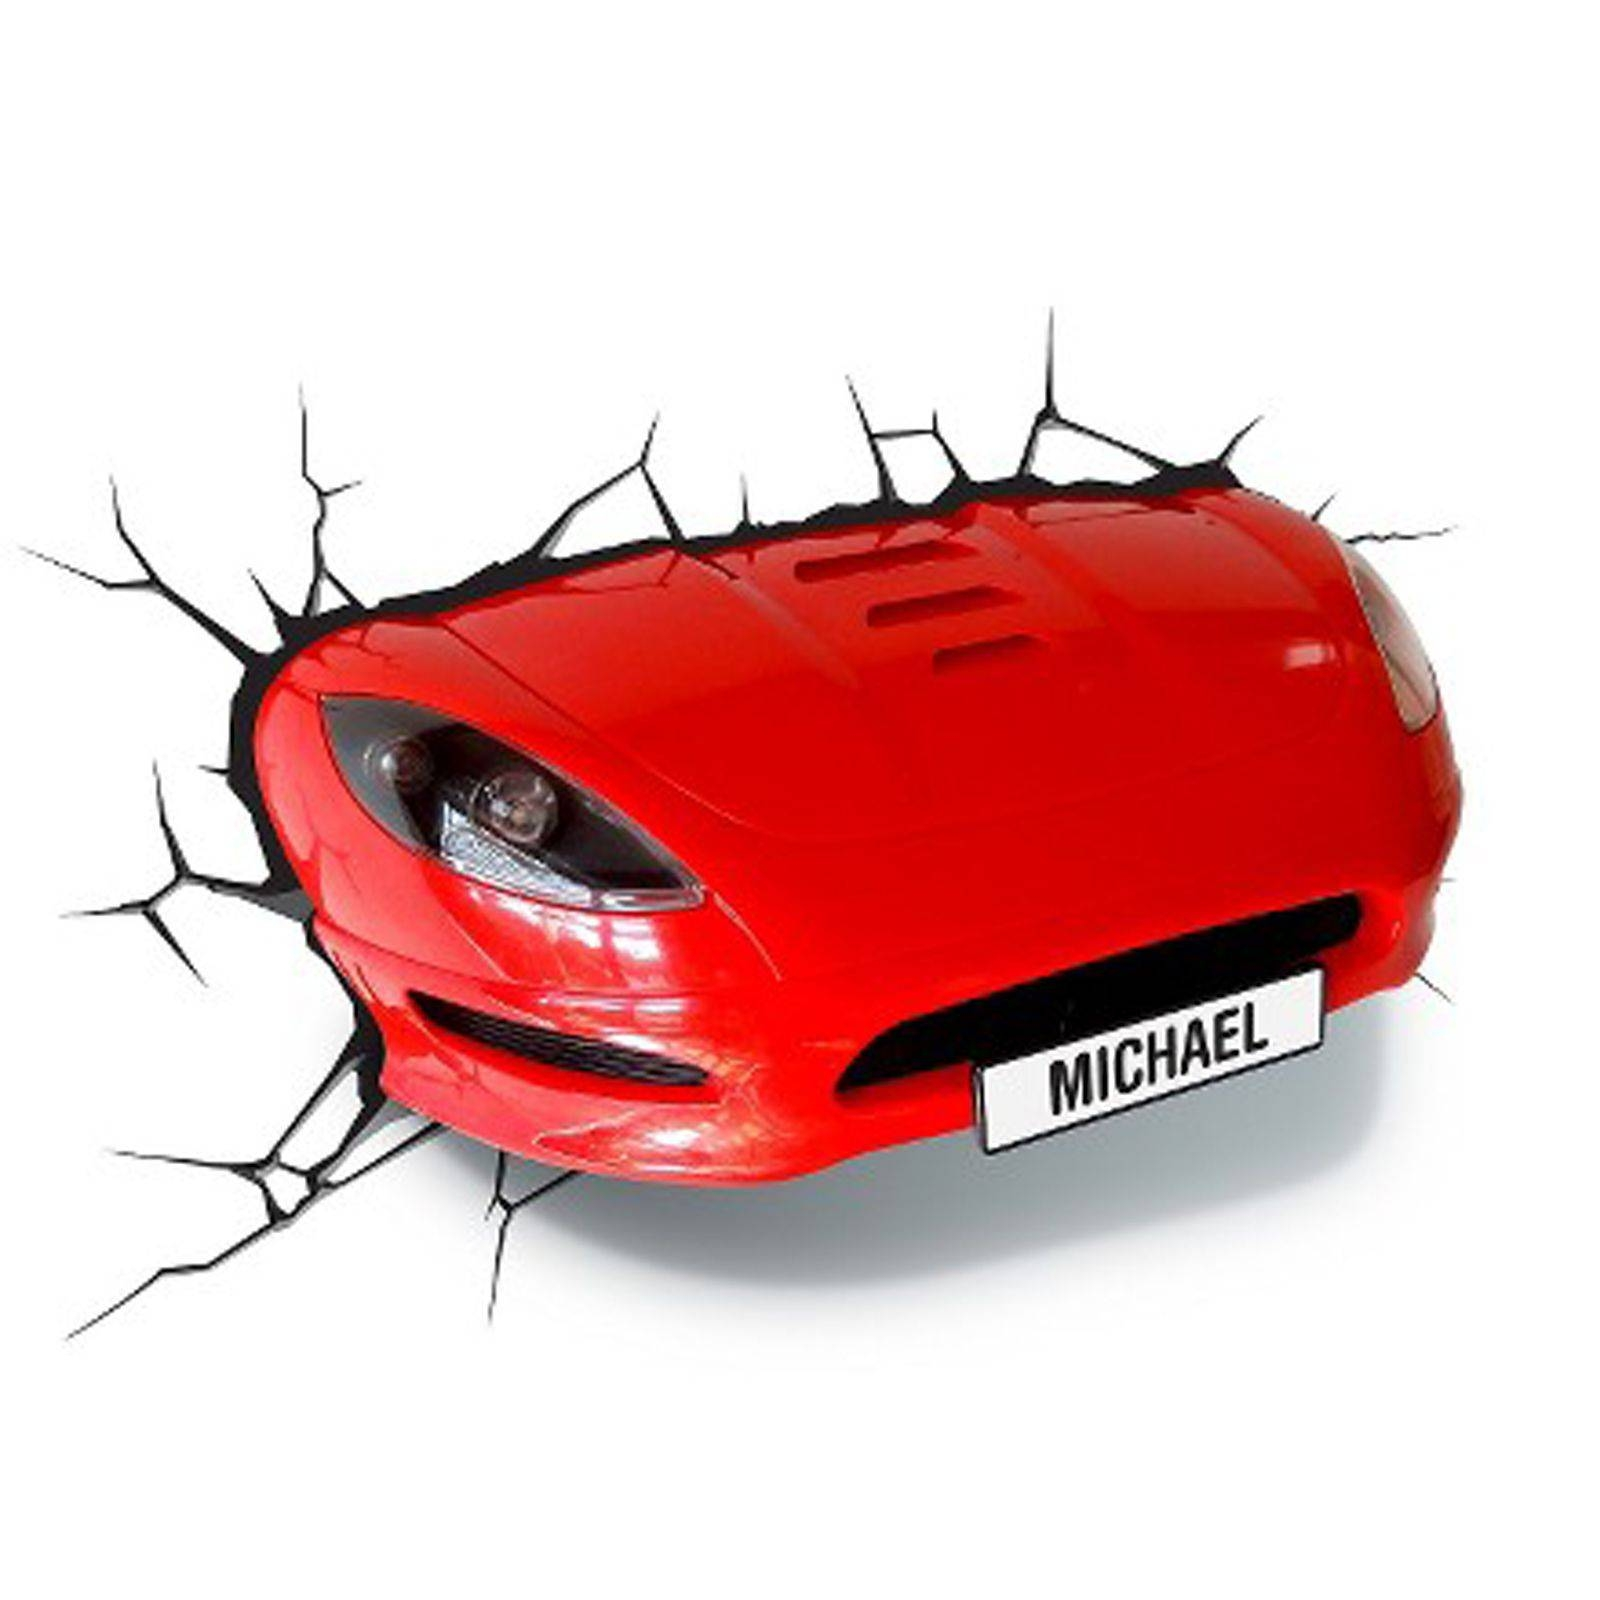 Red Sports Car 3D Effect Wall Light Lamp New Bedroom Decor | Ebay With Regard To Latest Cars 3D Wall Art (View 19 of 20)